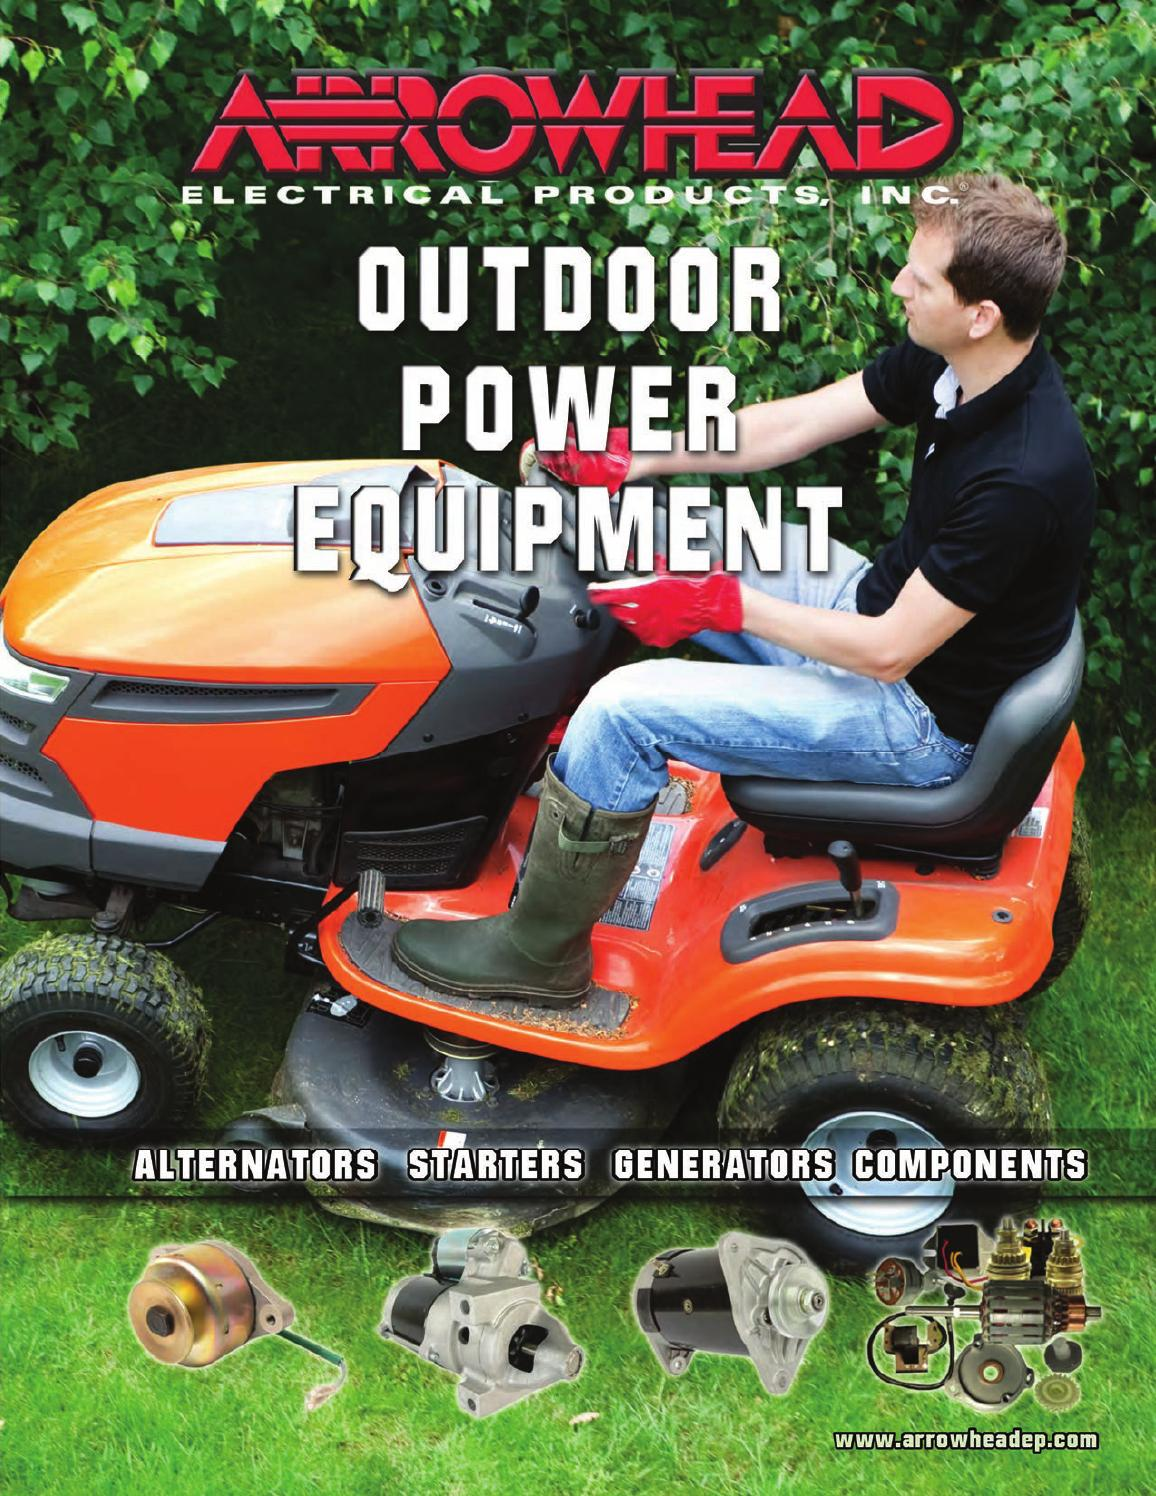 Arrowhead Electrical Products Outdoor Power Equipment Catalog 2013 480 Wiring Diagram Ez Go Workhorse Engine By Issuu